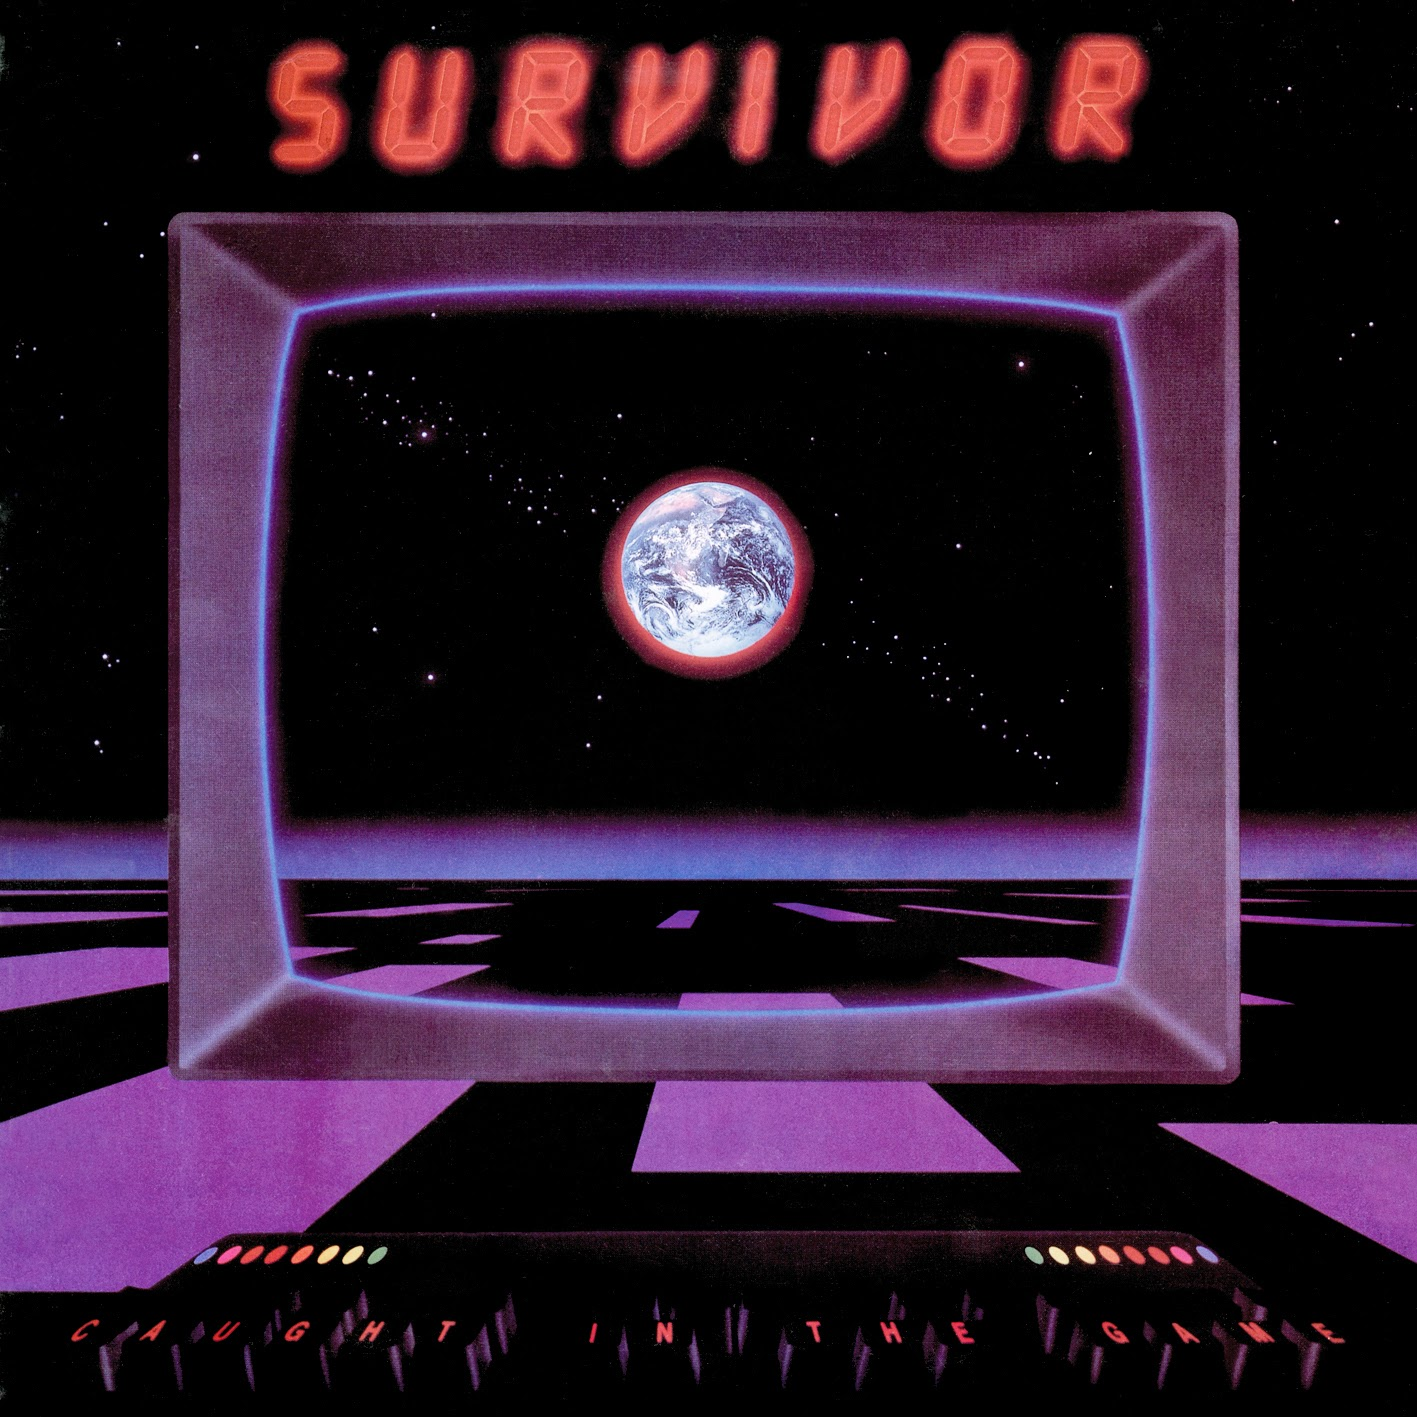 Survivor Caught in the game 1983 aor melodic rock